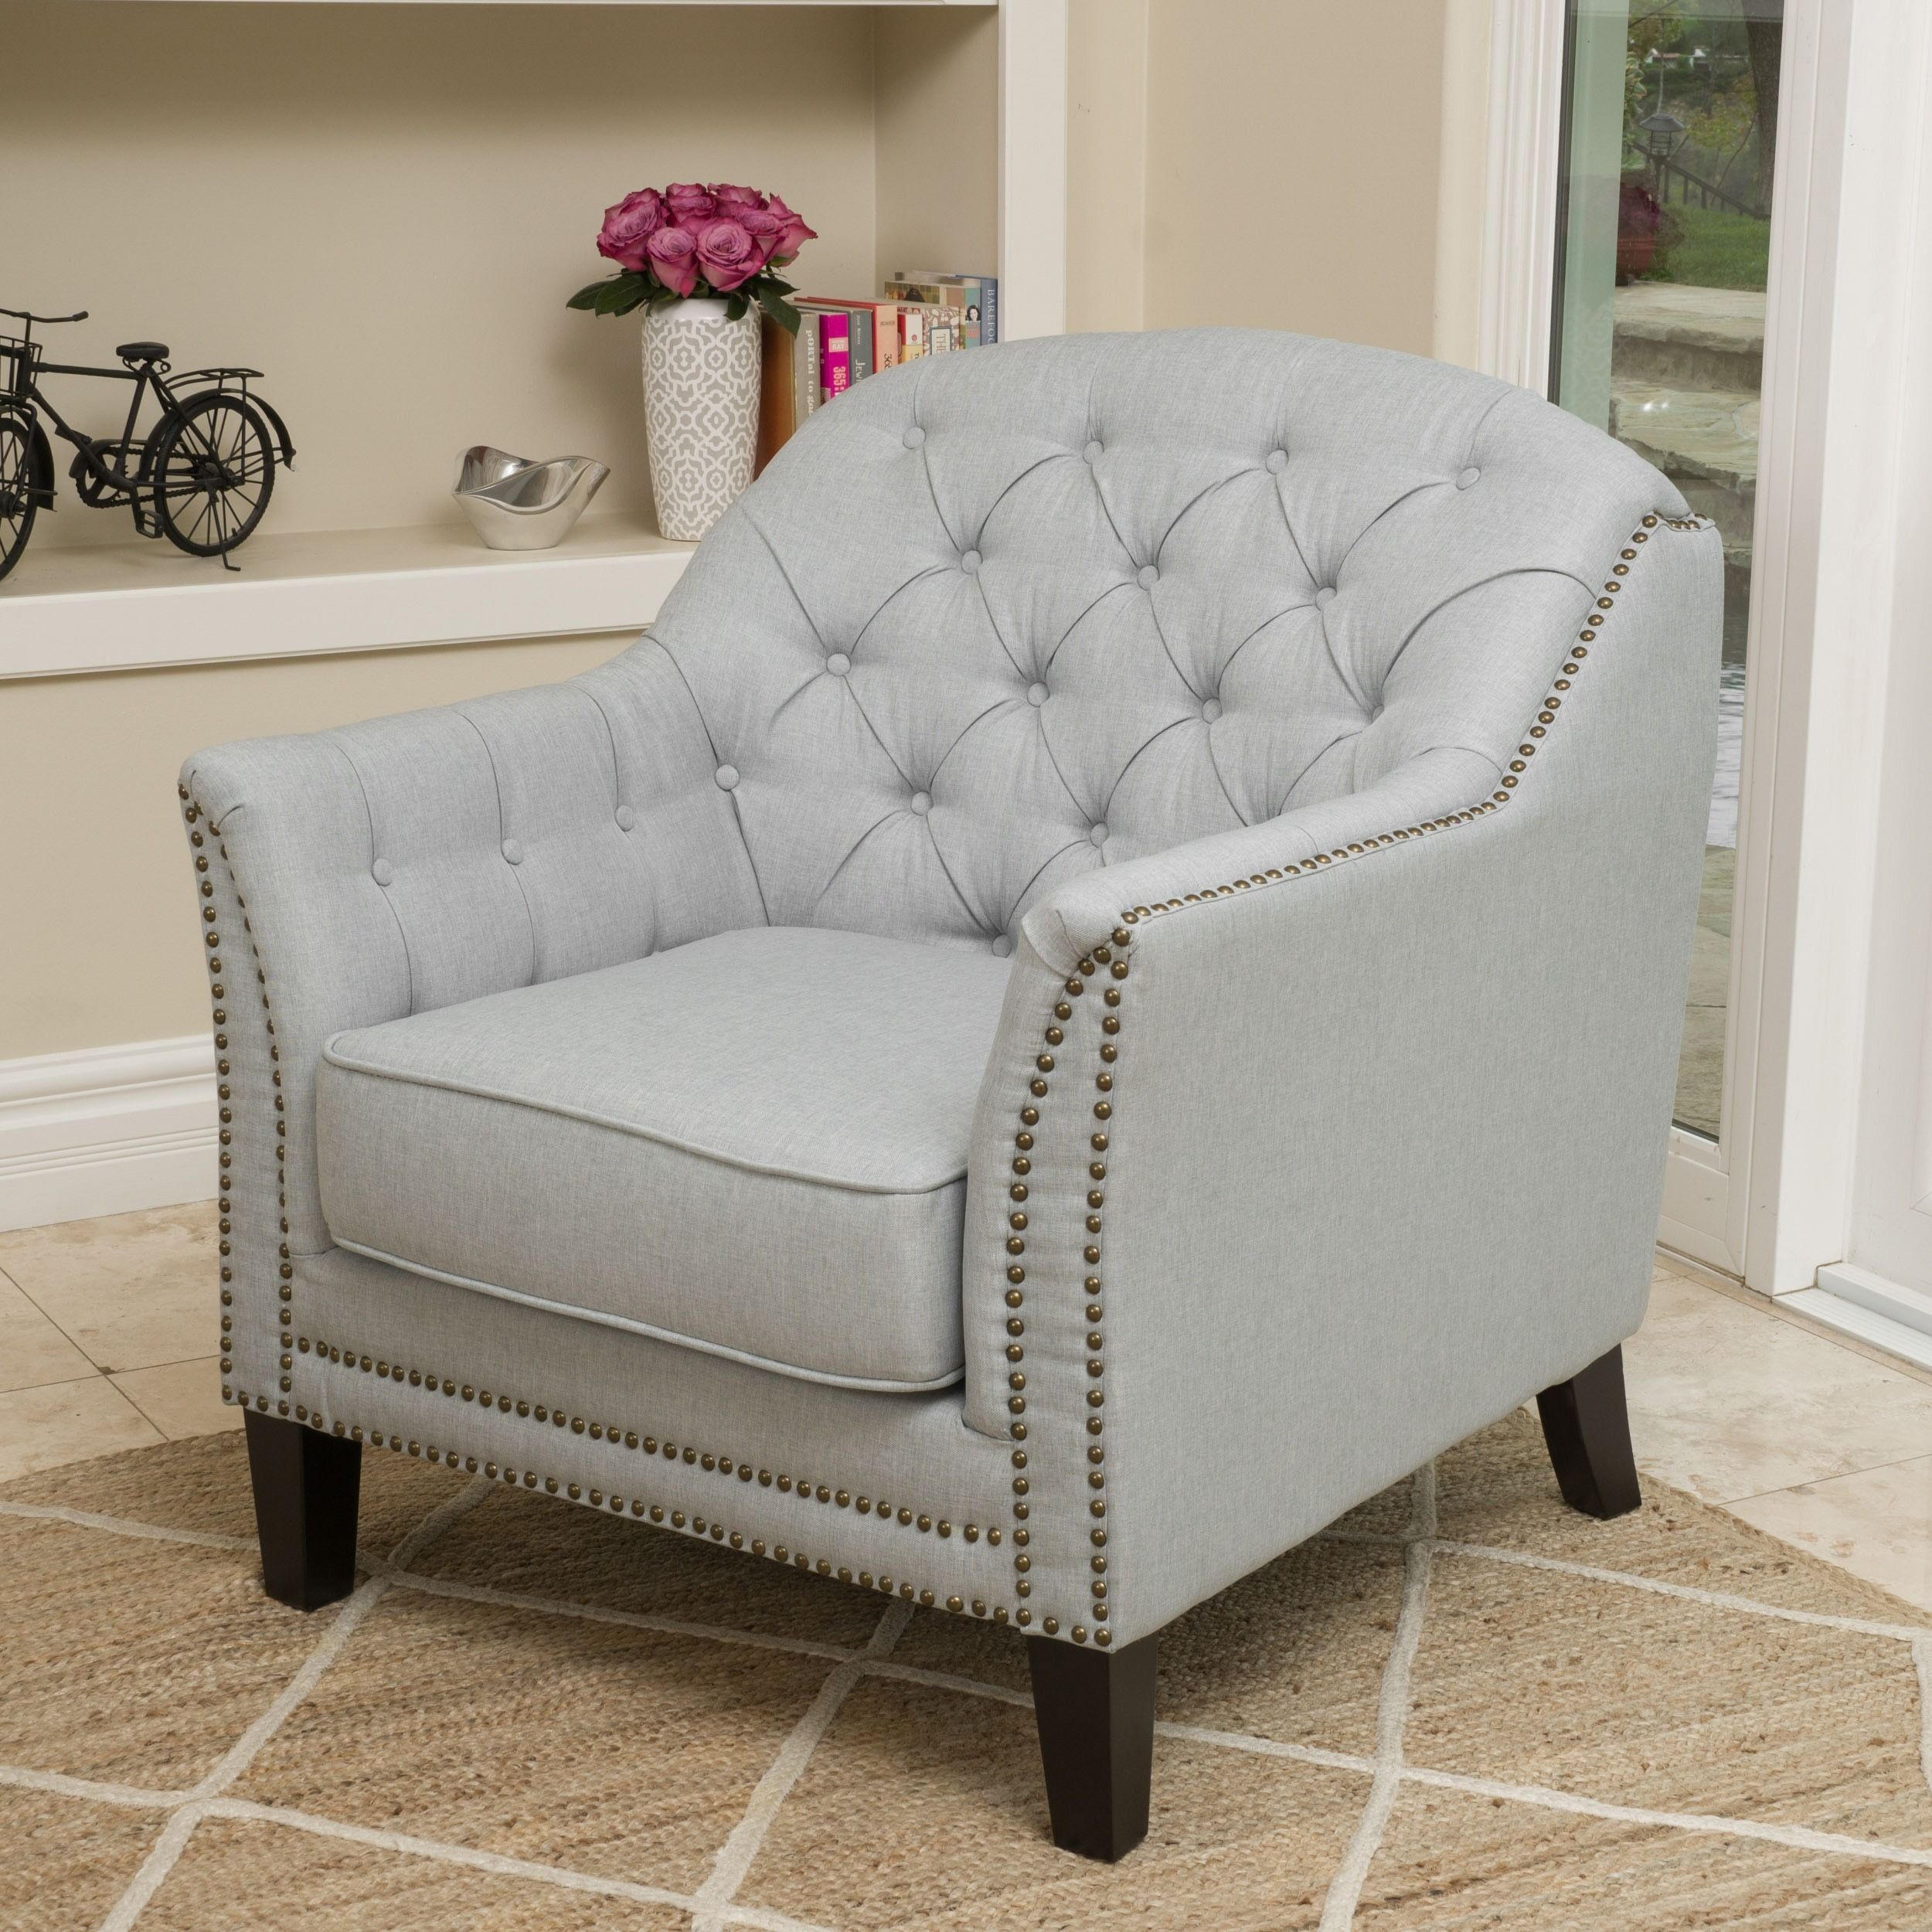 Coatbridge Fabric Club Chair By Christopher Knight Home (Light Grey)